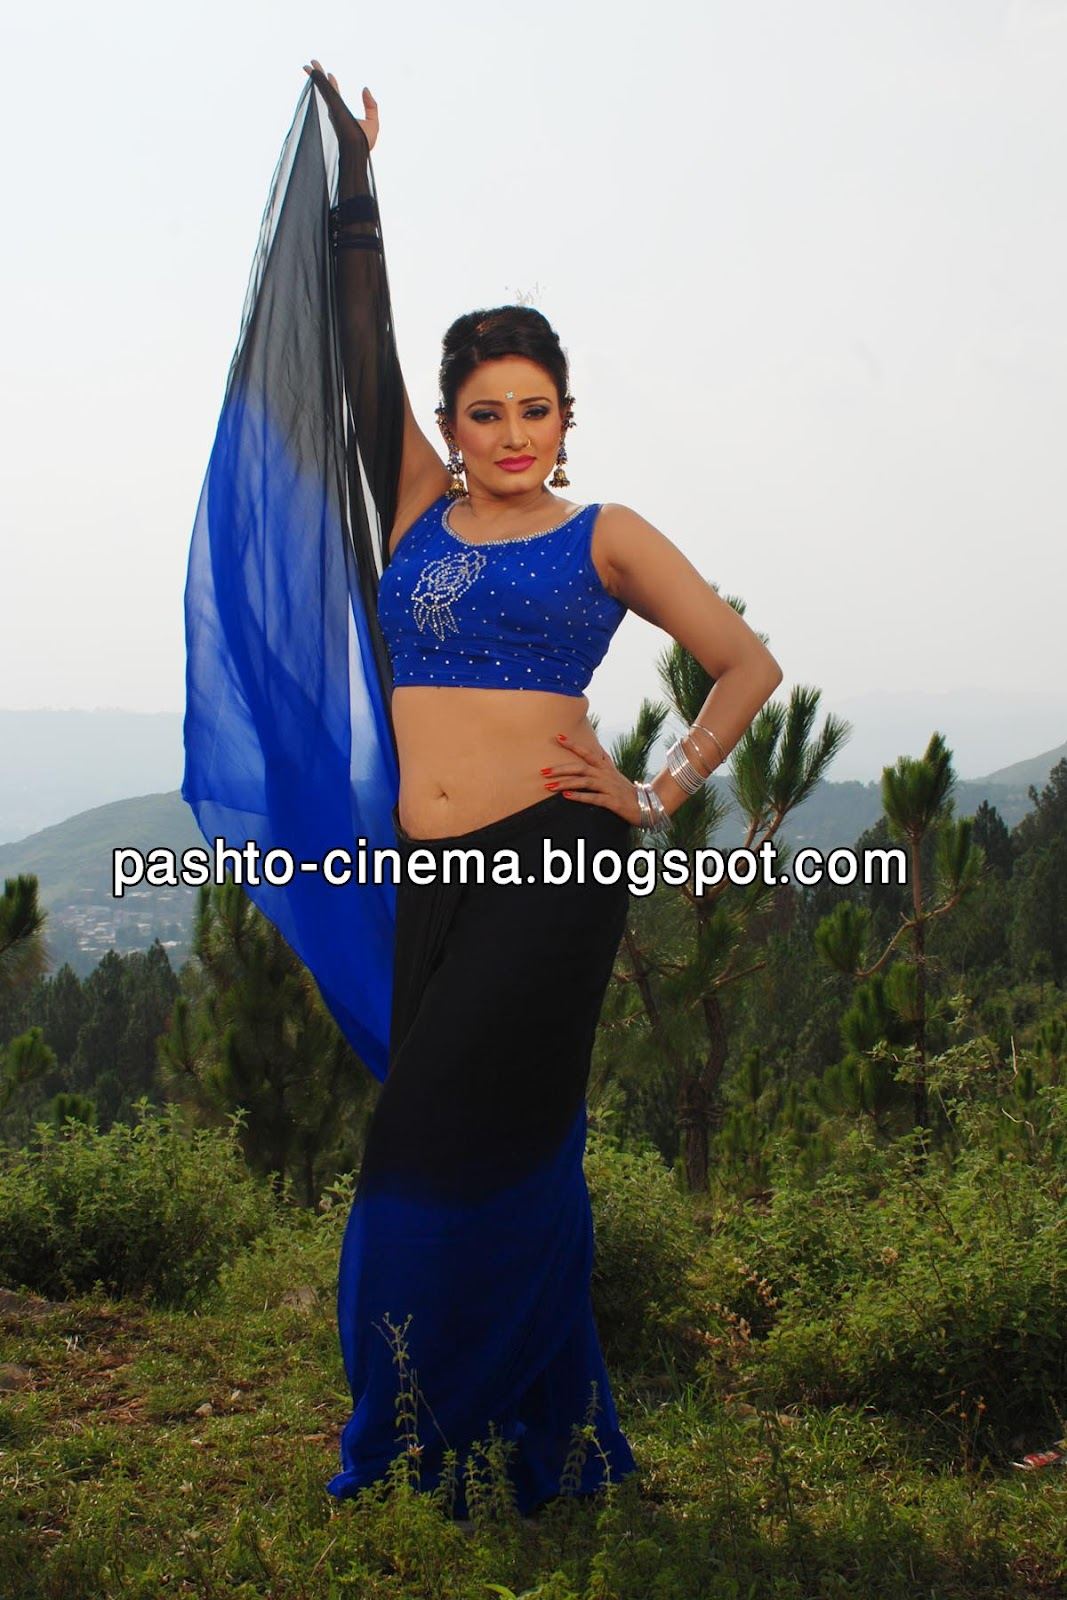 Sidra Noor Pics http://pashto-cinema.blogspot.com/2012/08/sidra-noor-new-wallpaper-in-film-qasam.html